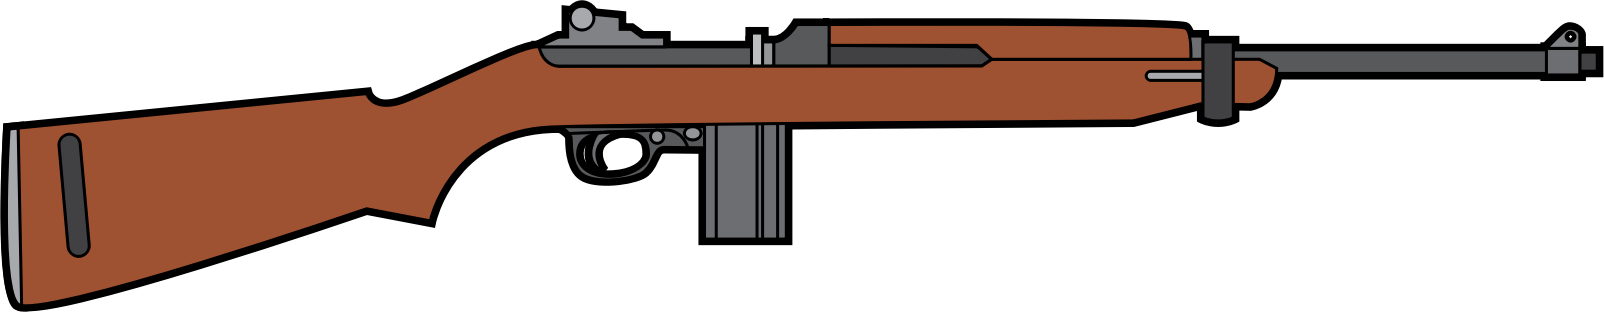 Approval of guns clipart graphic transparent library Free Military Rifle Cliparts, Download Free Clip Art, Free Clip Art ... graphic transparent library